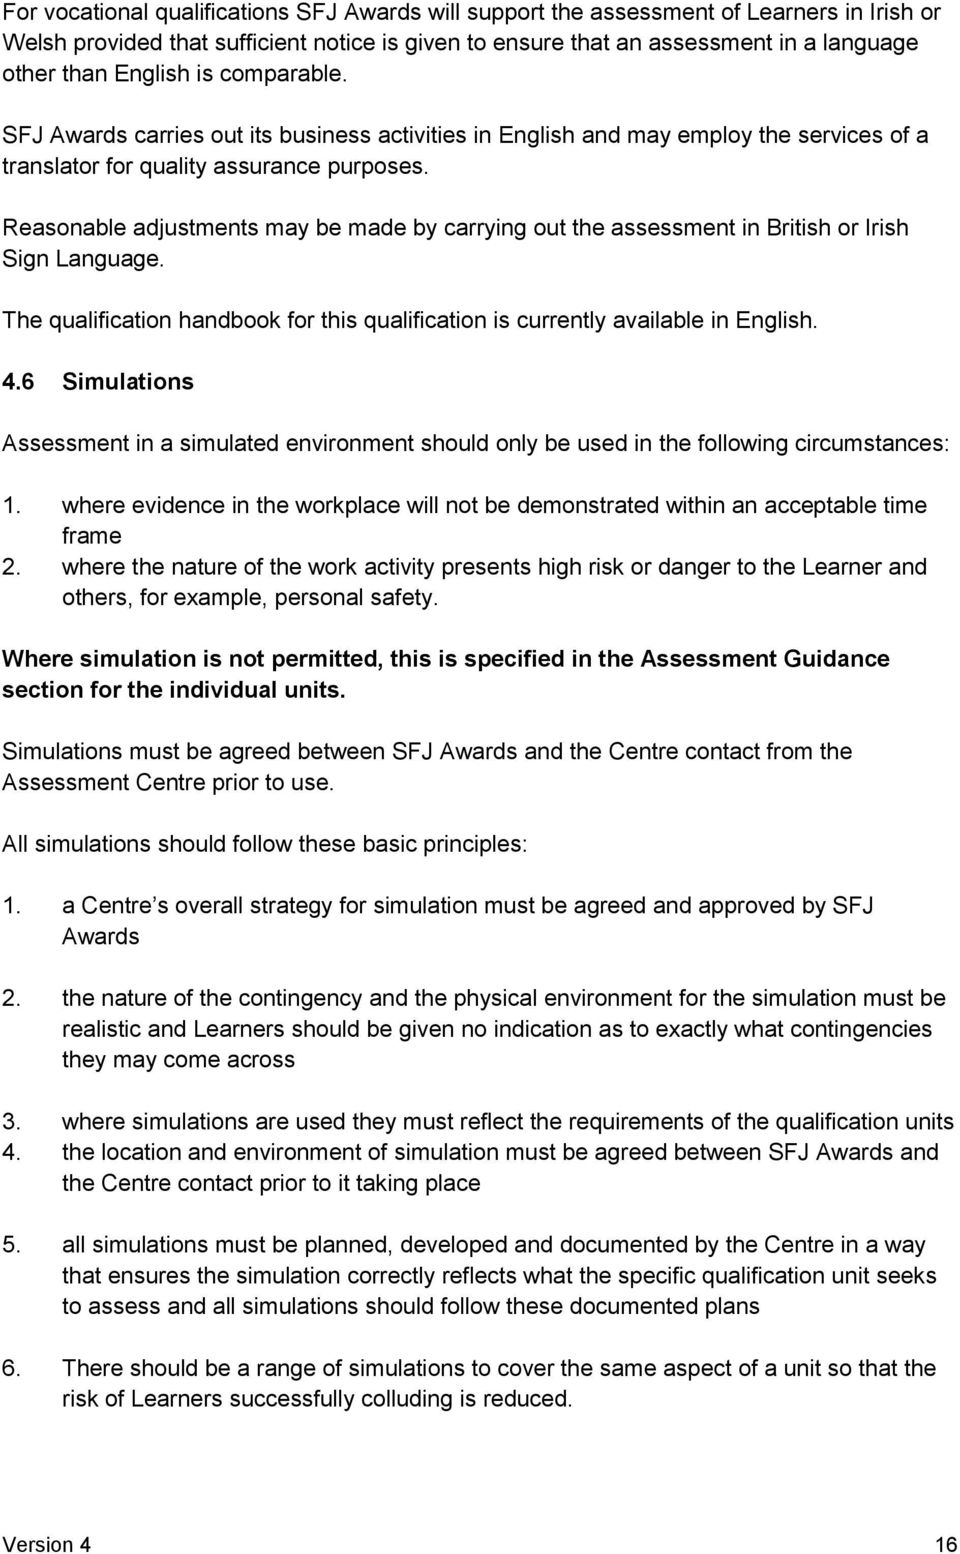 Reasonable adjustments may be made by carrying out the assessment in British or Irish Sign Language. The qualification handbook for this qualification is currently available in English. 4.